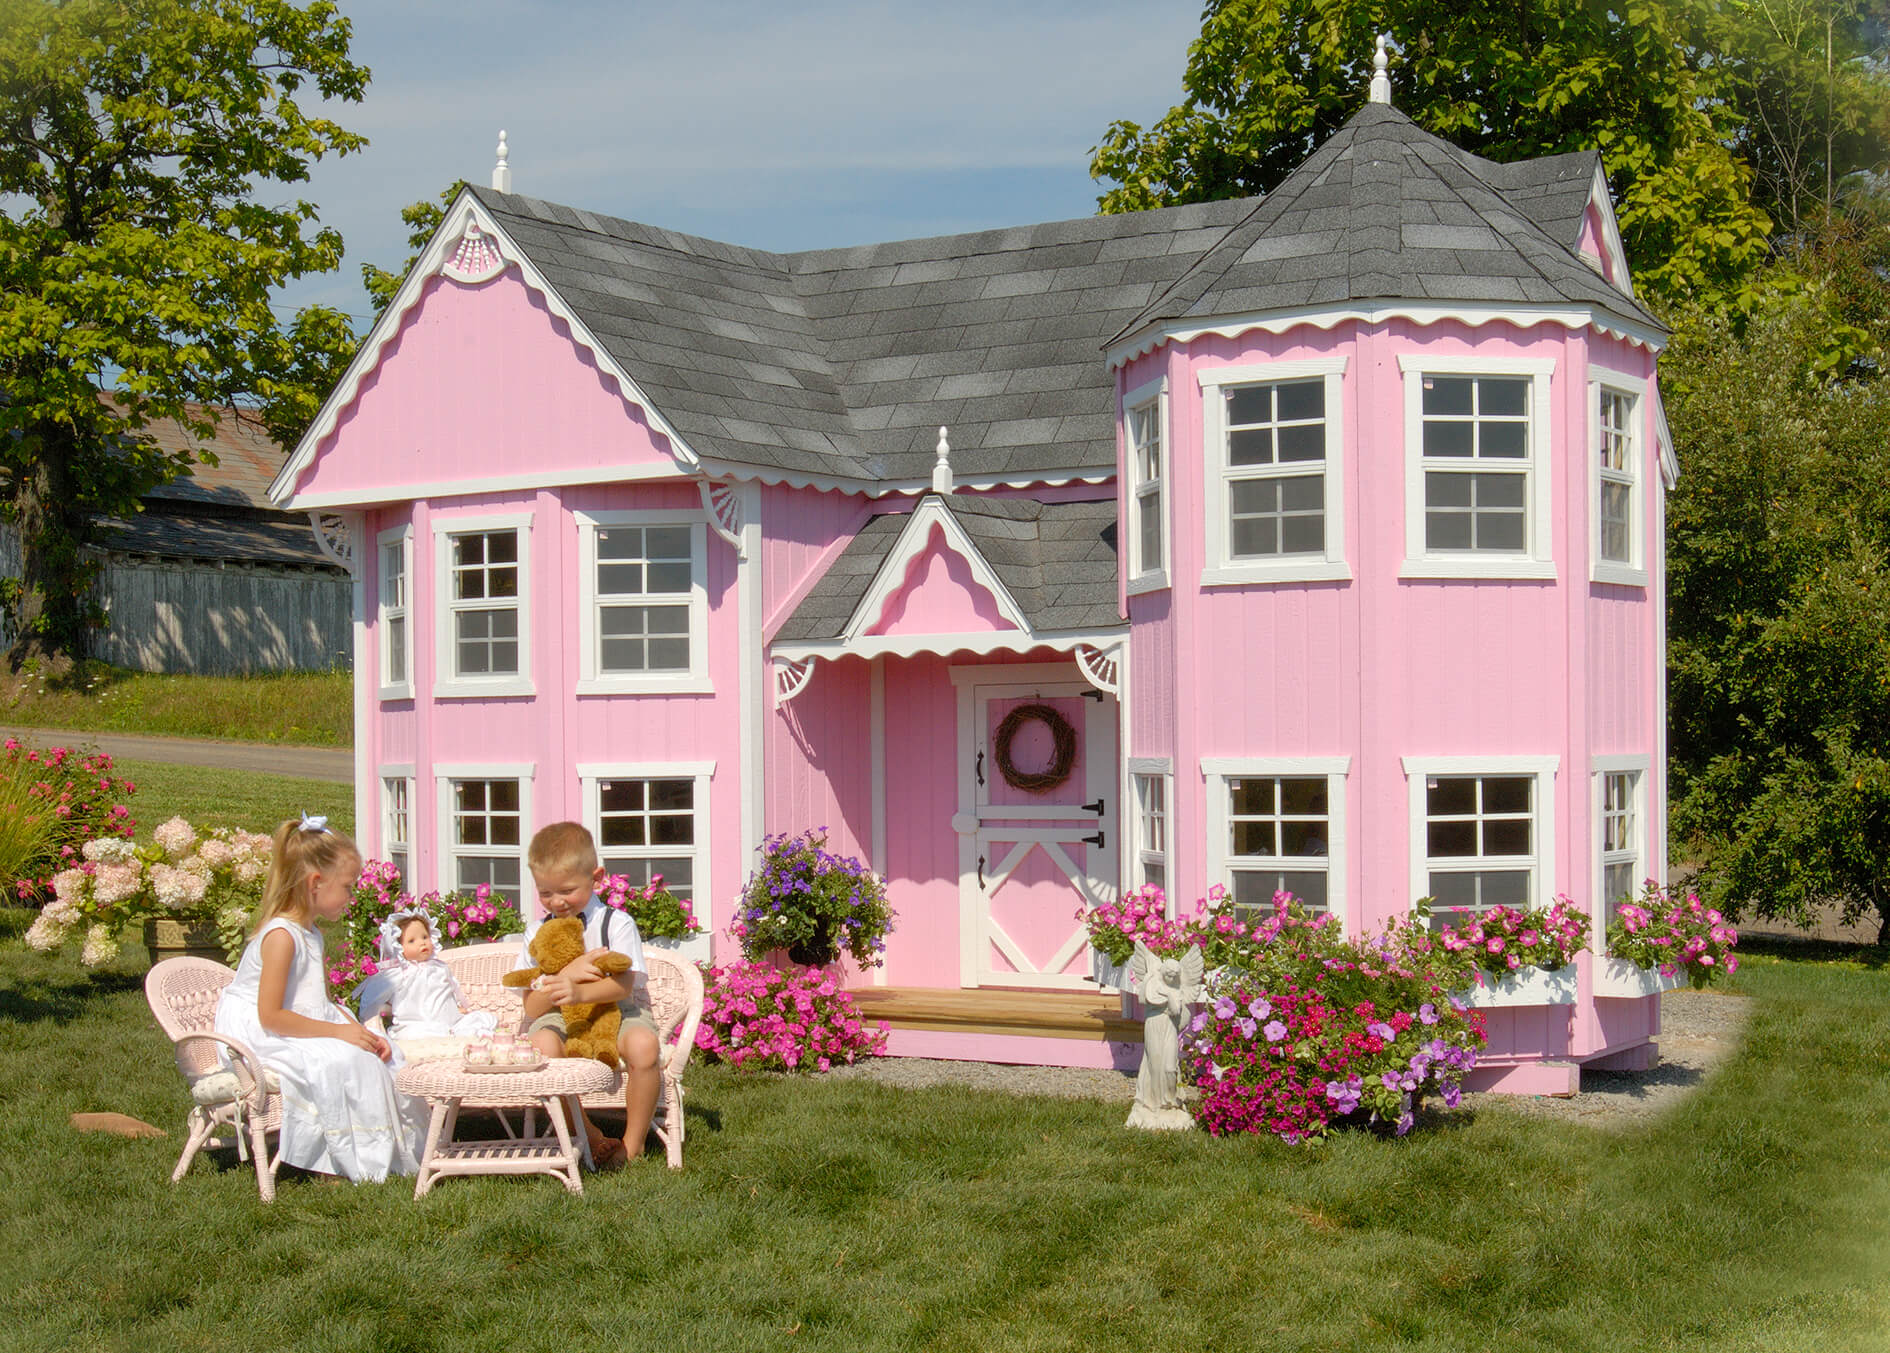 Sara's Victorian Mansion playhouse